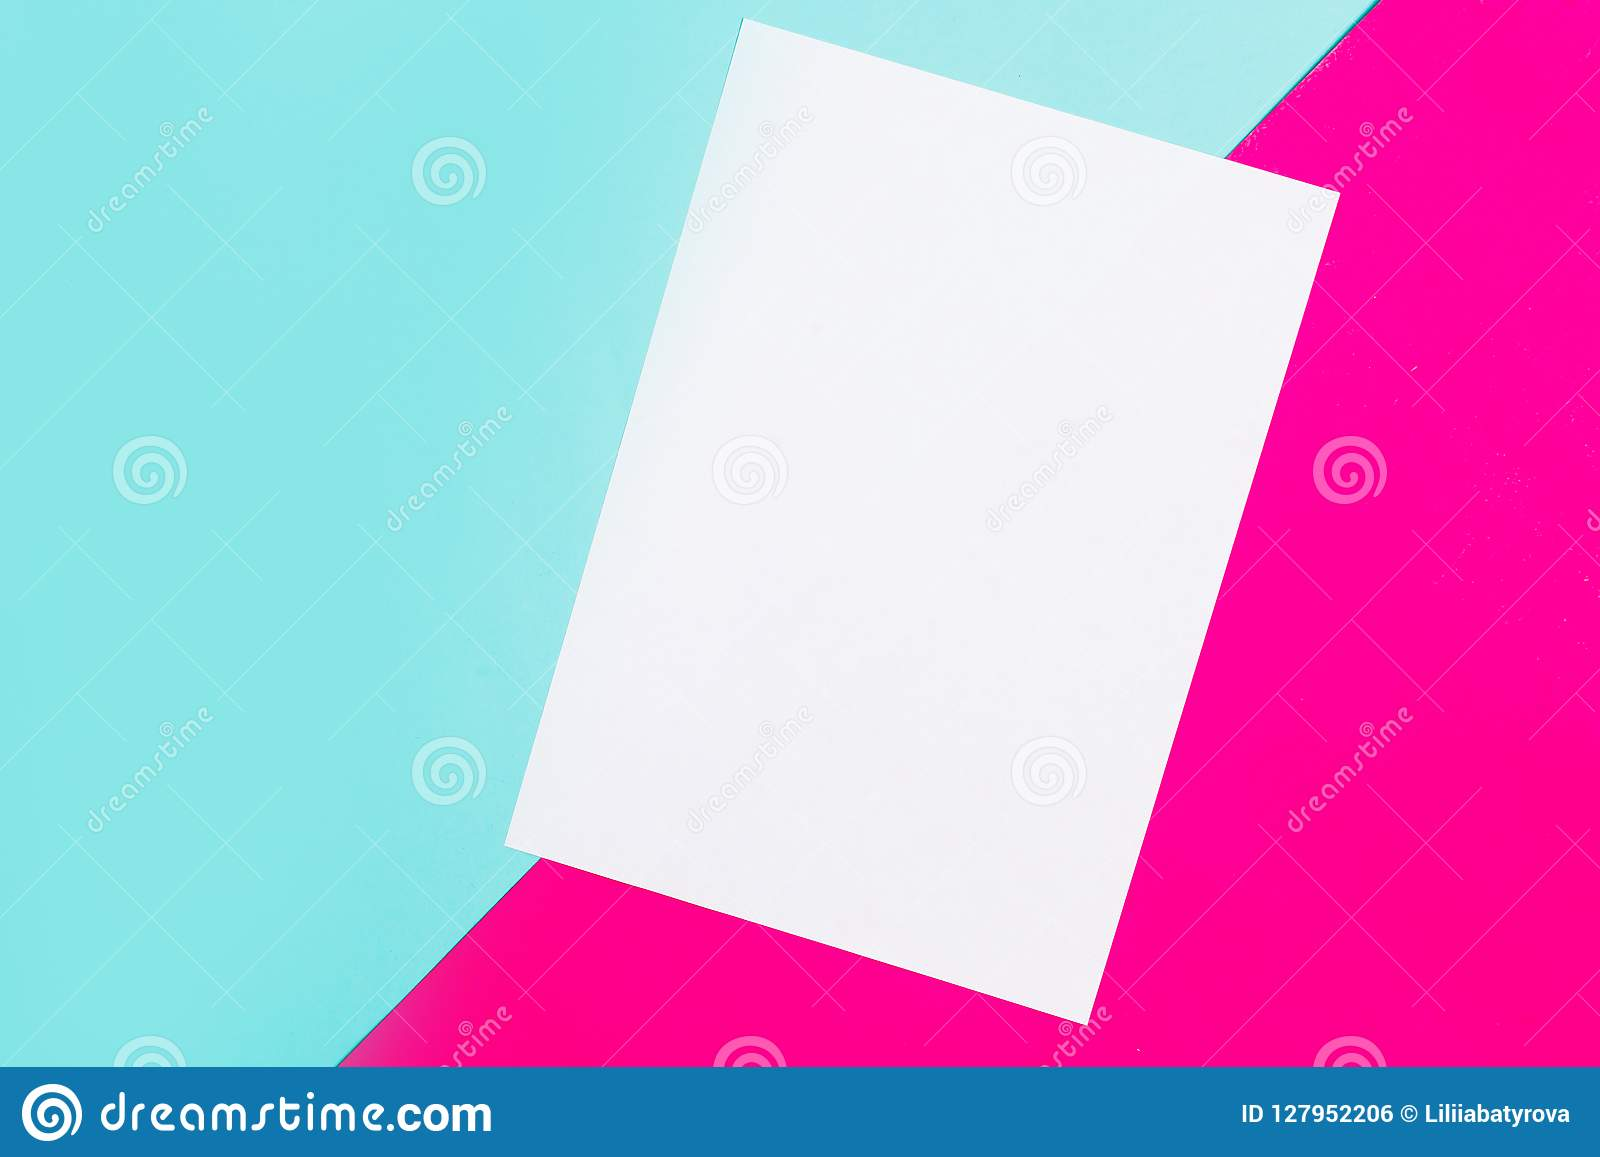 Color Abstract Vector Background Text Frame Stock Vector: Color Abstract Background Text Frame Stock Images